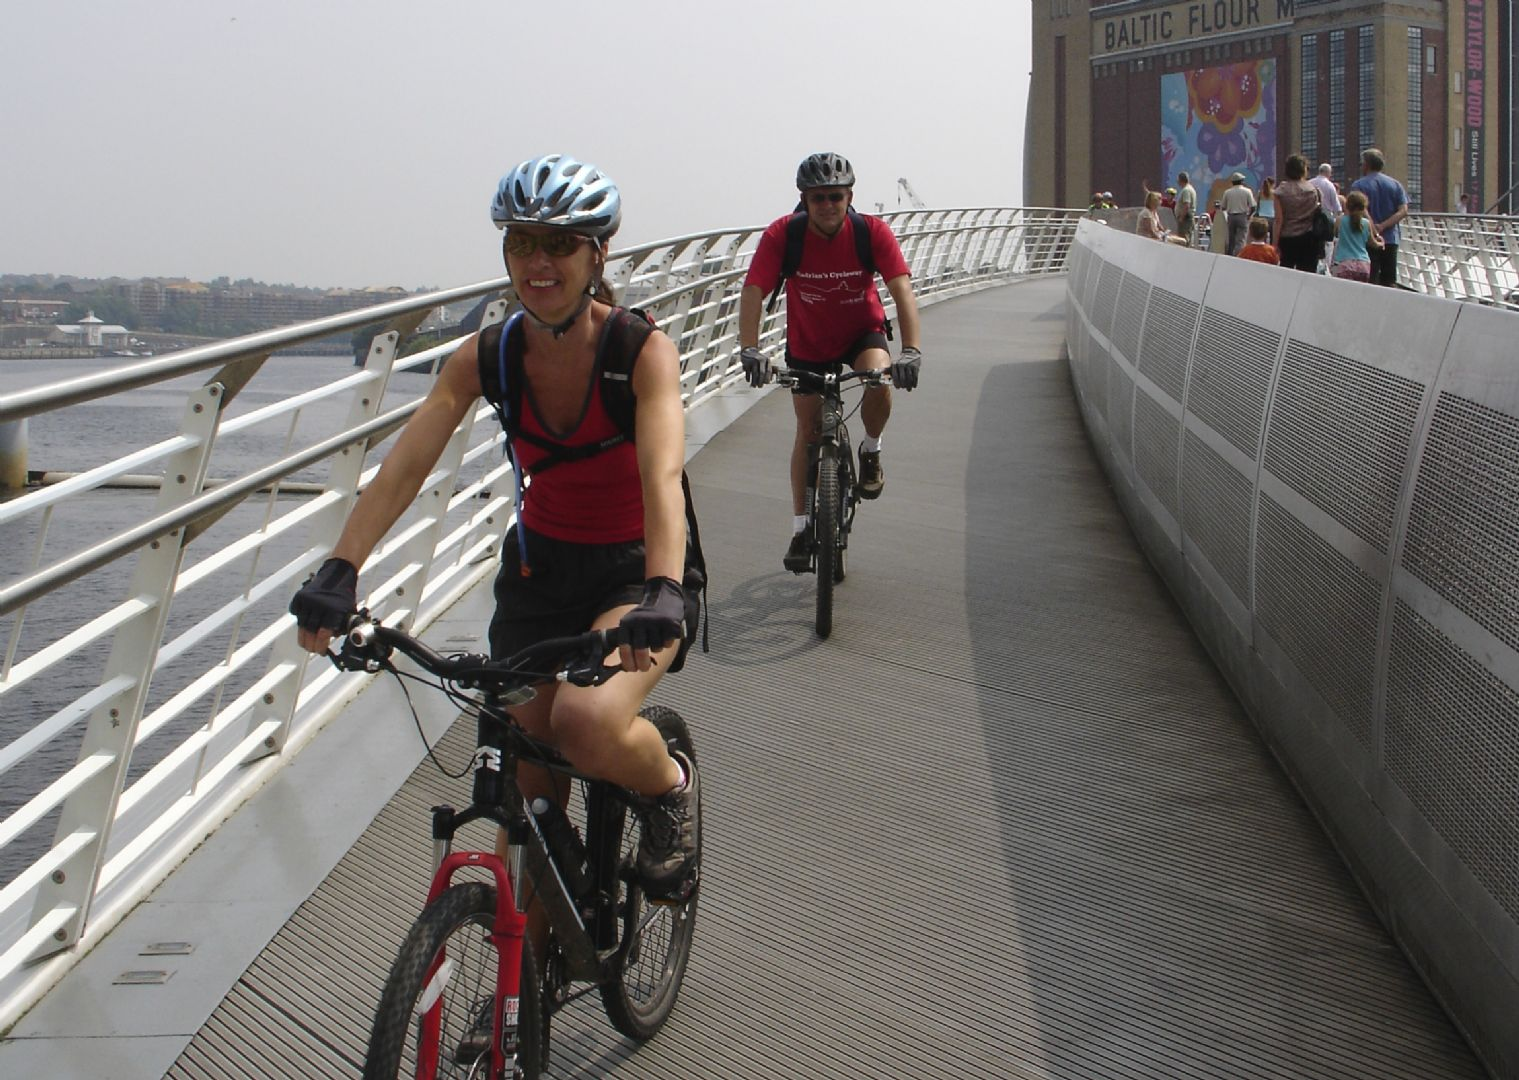 ABL0913.jpg - UK - C2C - Coast to Coast 3 Days Cycling - Self-Guided Leisure Cycling Holiday - Leisure Cycling